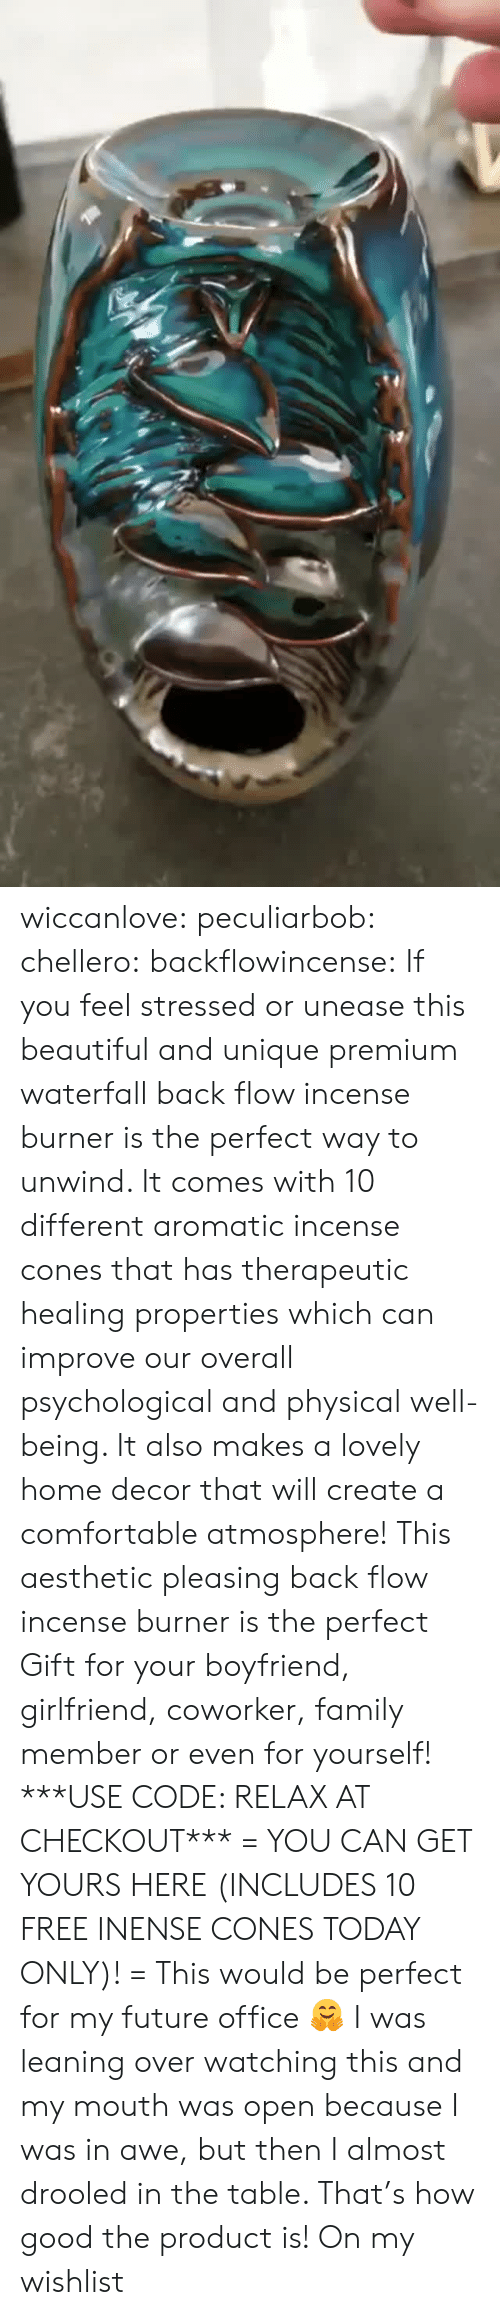 Beautiful, Comfortable, and Family: wiccanlove:  peculiarbob: chellero:   backflowincense:  If you feel stressed or unease this beautiful and unique premium waterfall back flow incense burner is the perfect way to unwind. It comes with 10 different aromatic incense cones that has therapeutic healing properties which can improve our overall psychological and physical well-being. It also makes a lovely home decor that will create a comfortable atmosphere! This aesthetic pleasing back flow incense burner is the perfect Gift for your boyfriend, girlfriend, coworker, family member or even for yourself! ***USE CODE: RELAX AT CHECKOUT*** = YOU CAN GET YOURS HERE (INCLUDES 10 FREE INENSE CONES TODAY ONLY)! =   This would be perfect for my future office 🤗   I was leaning over watching this and my mouth was open because I was in awe, but then I almost drooled in the table. That's how good the product is!   On my wishlist